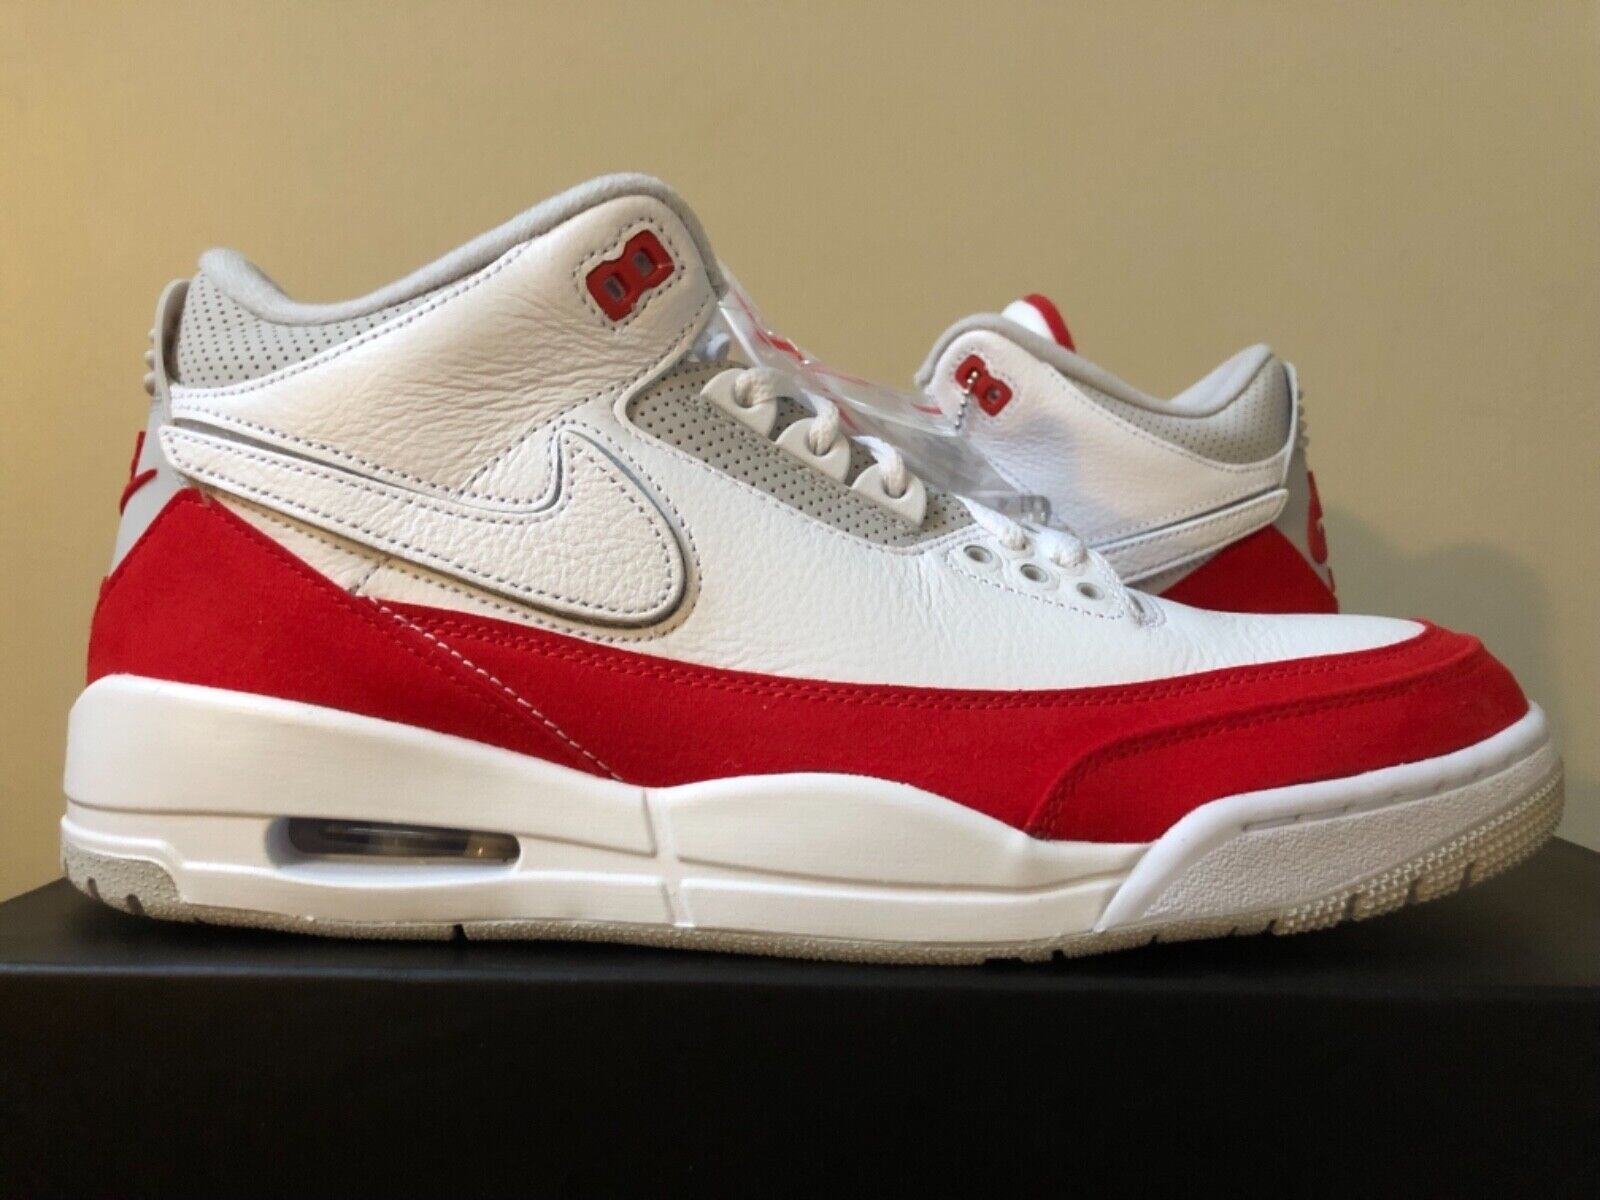 Air Jordan Retro 3 TH Tinker White Red CJ0939-100 8-14 LIMITED 100% Authentic